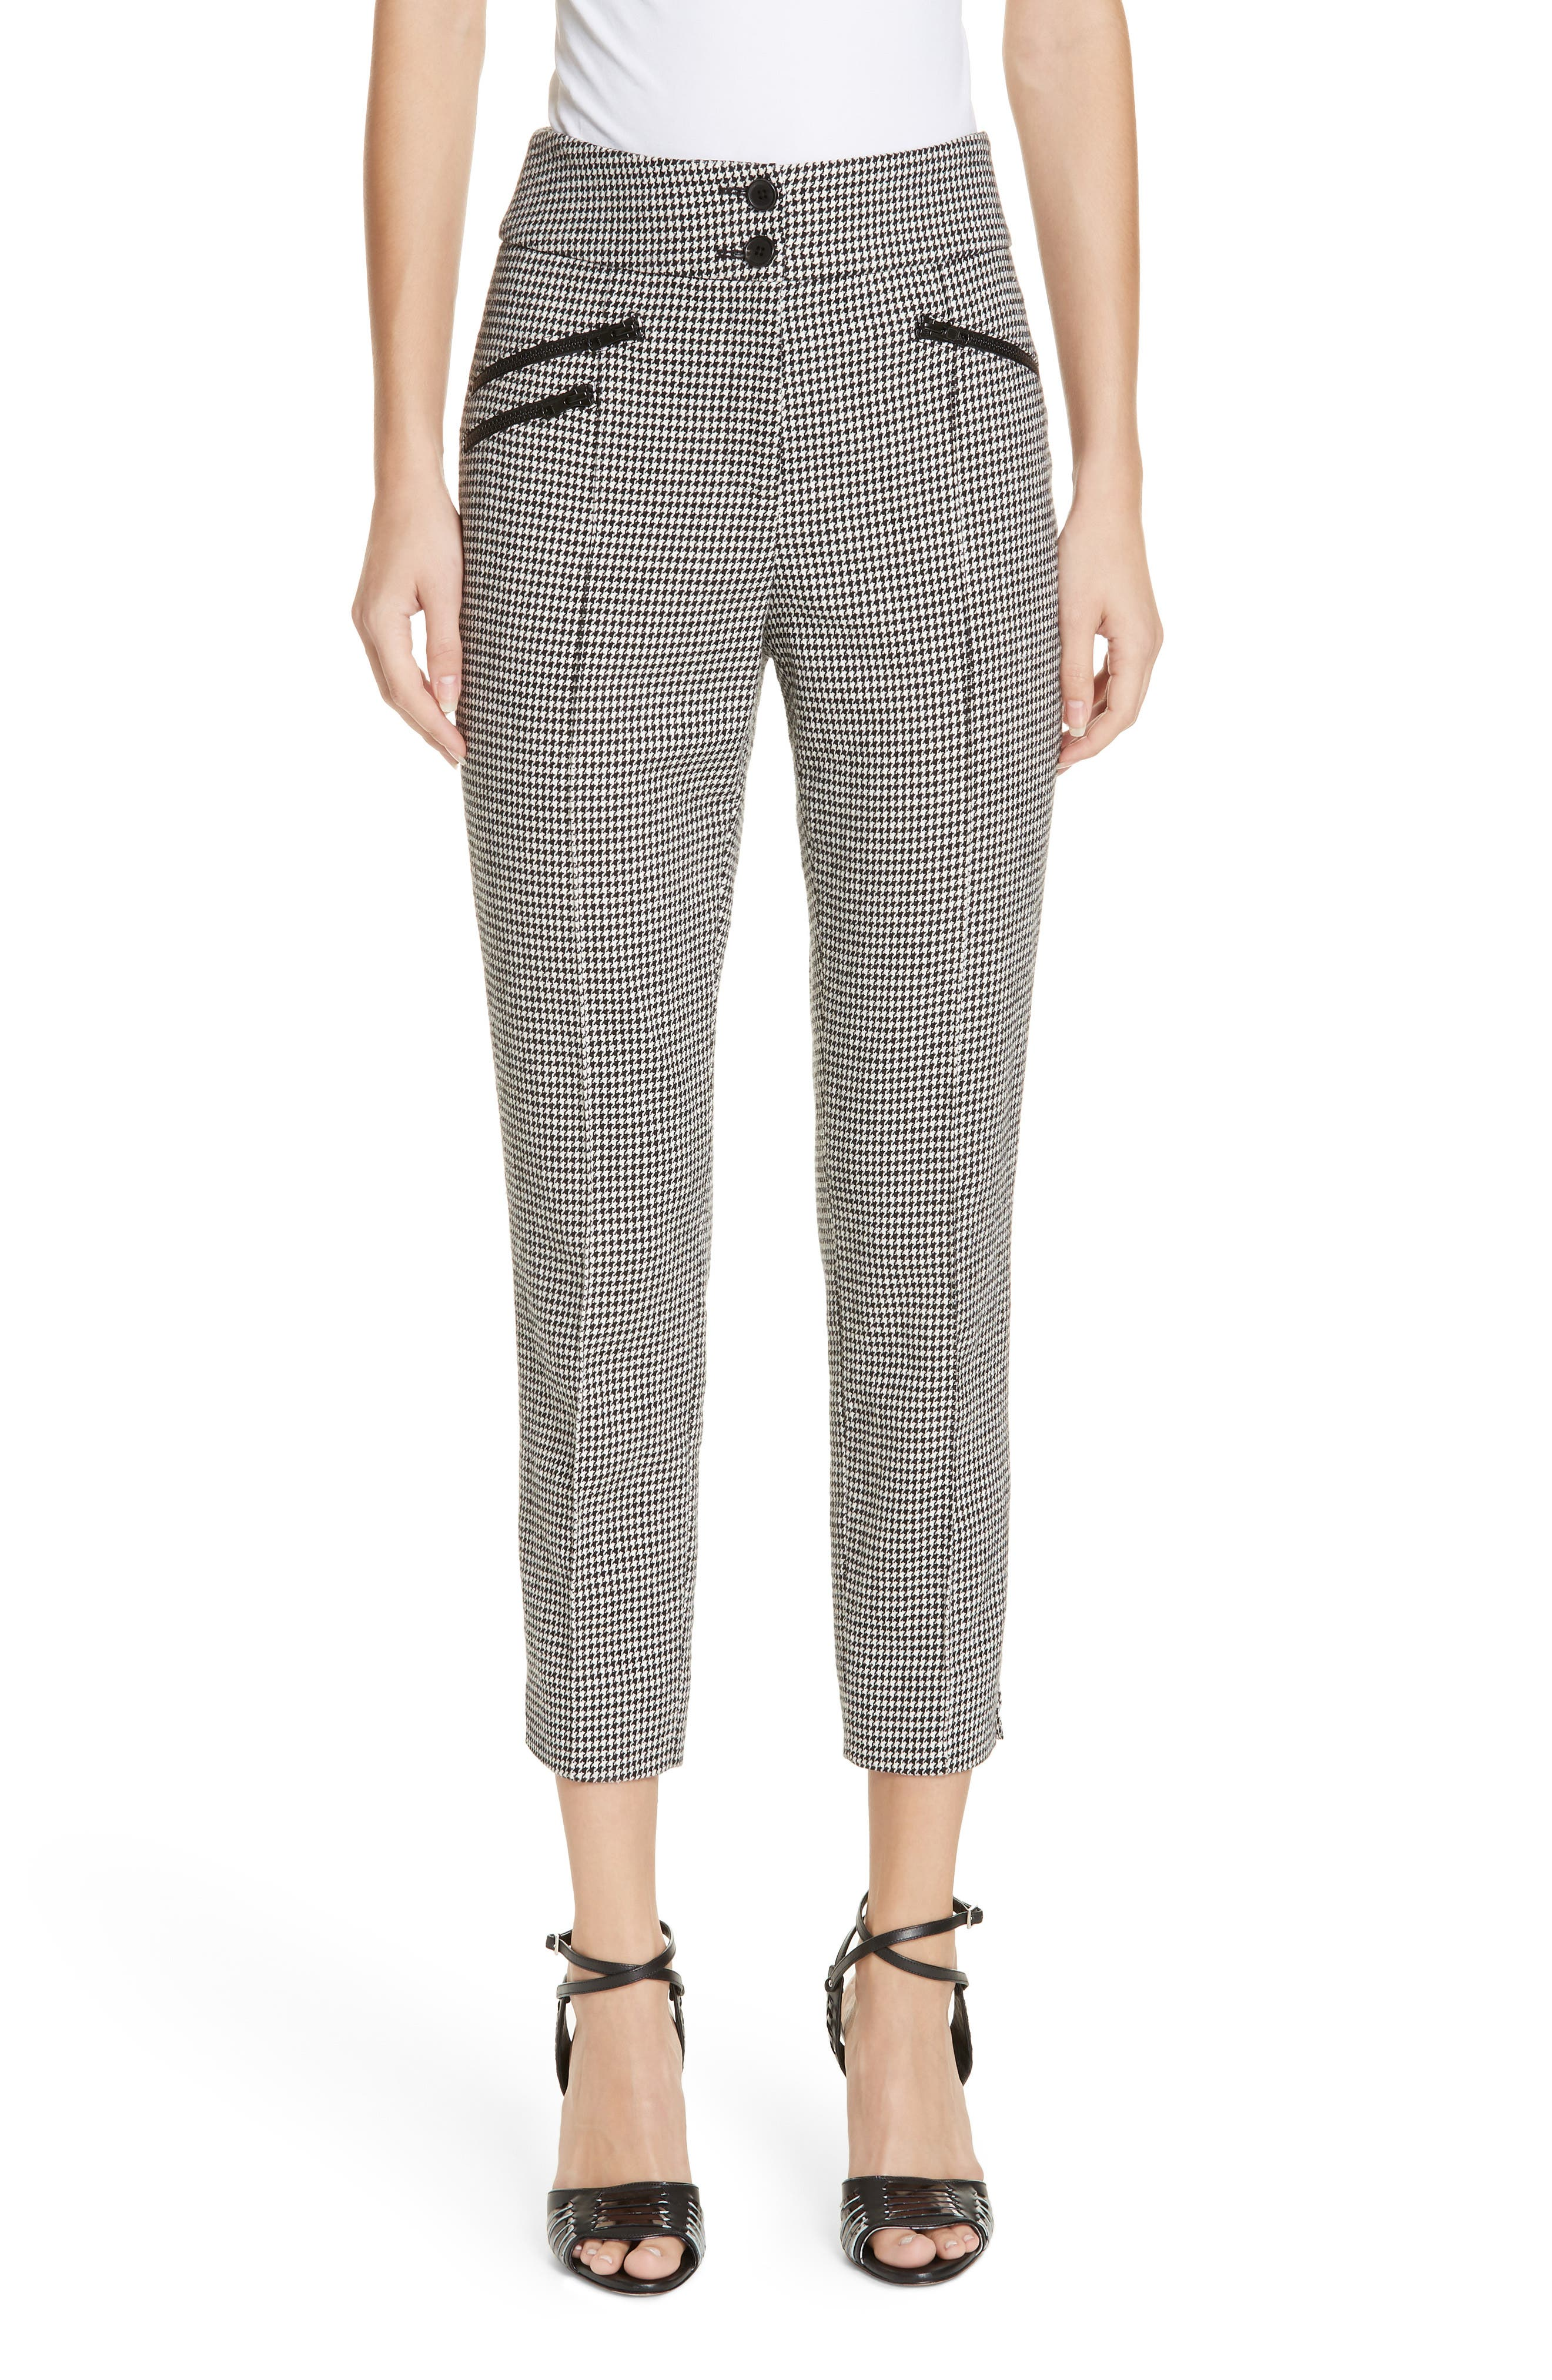 Felton Houndstooth Trousers,                         Main,                         color, BLACK/WHITE